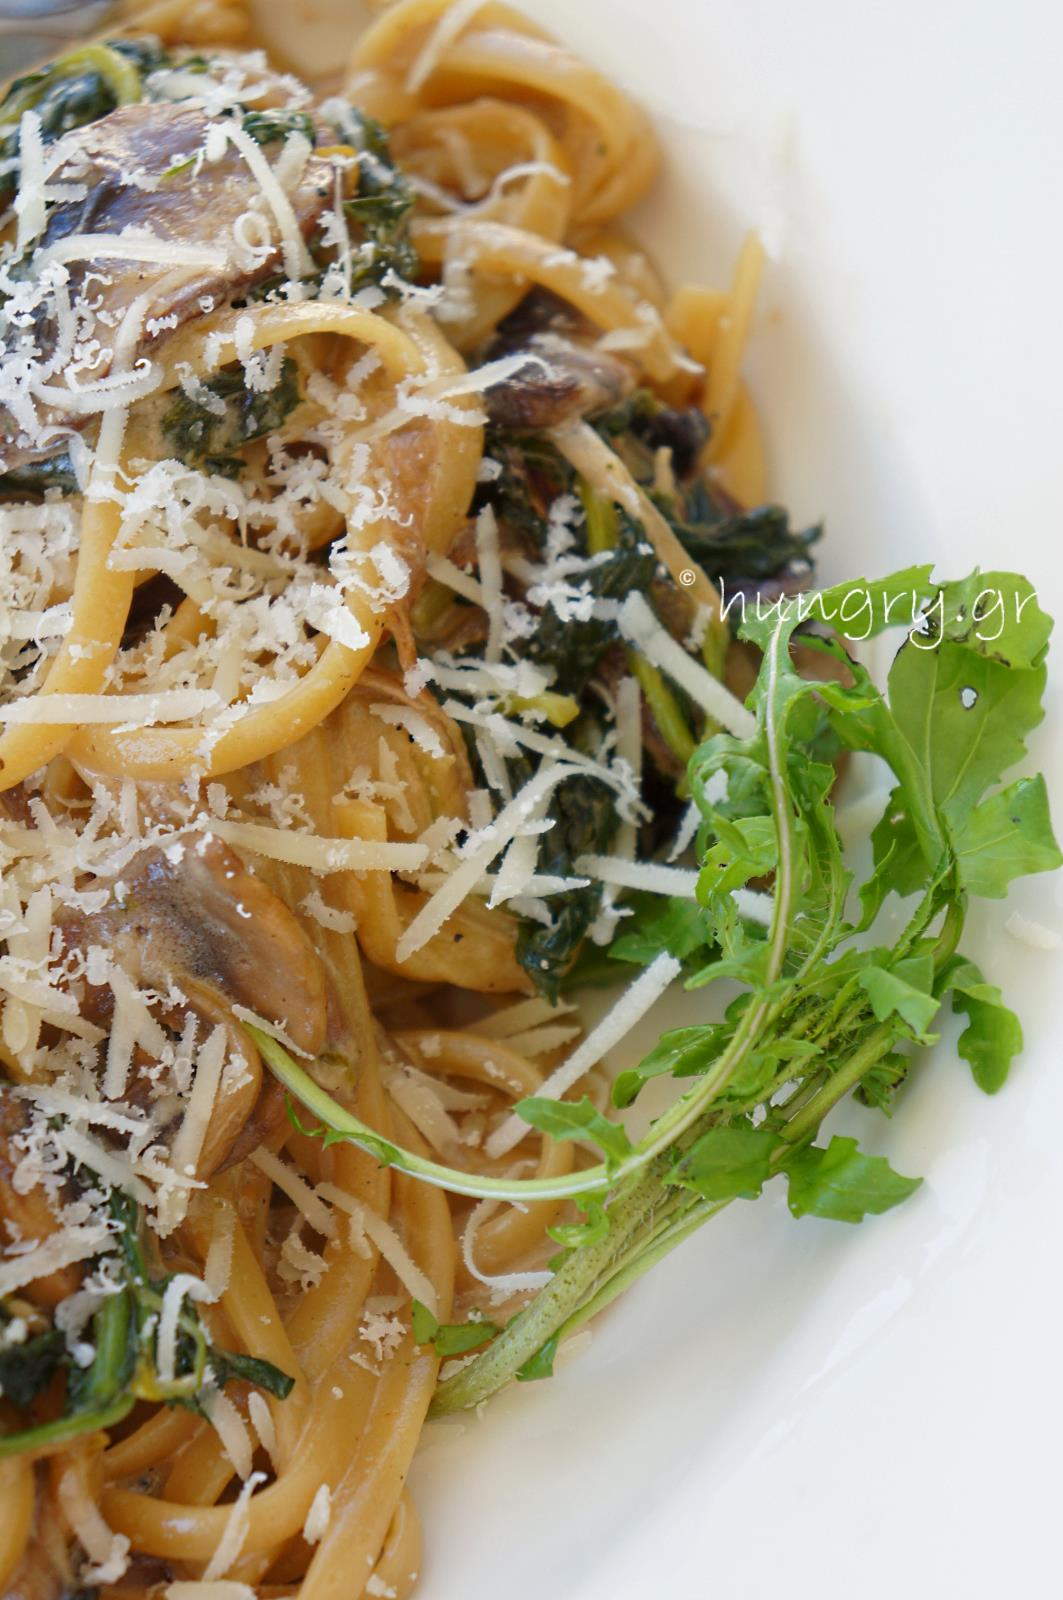 Creamy Mushroom & Spinach Pasta with Caramelized Onions